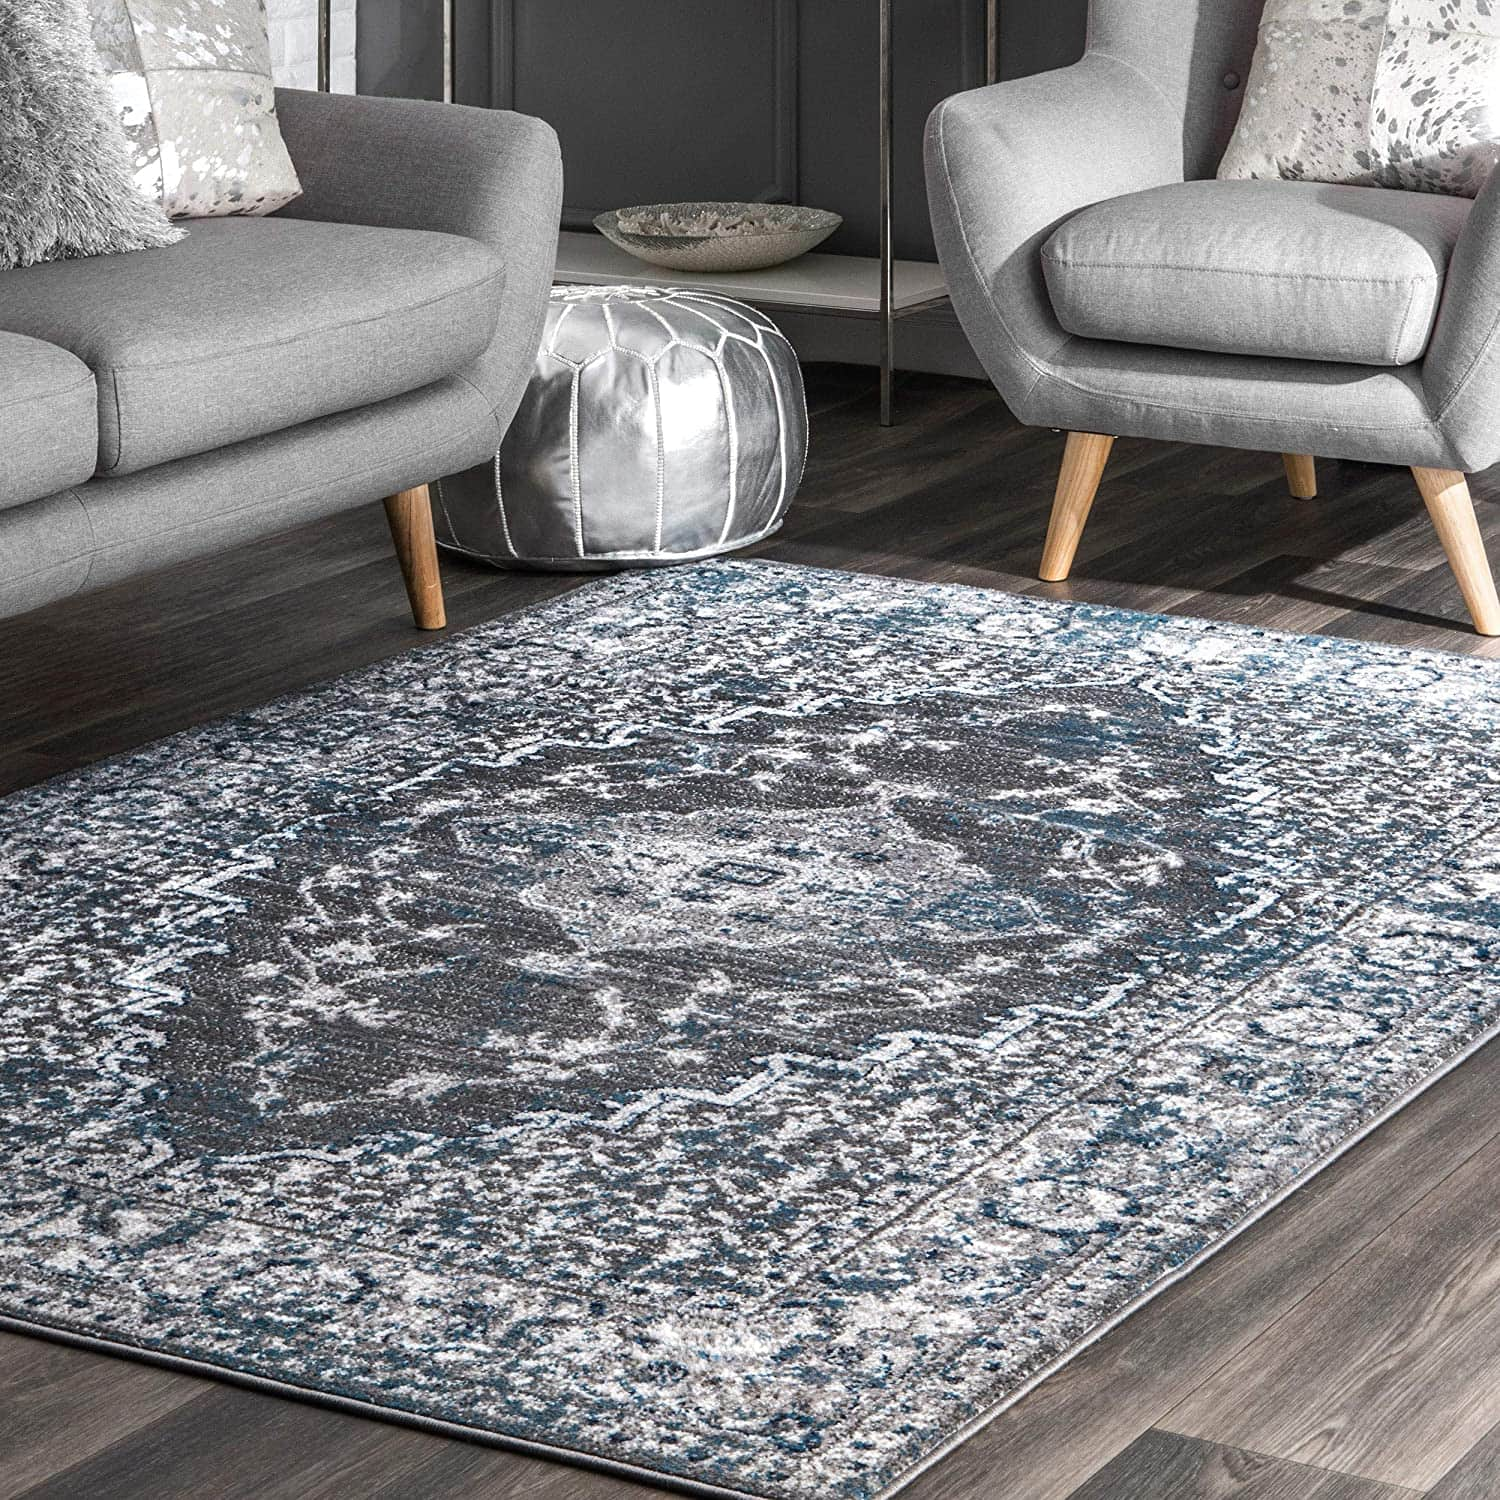 5' x 8' nuLOOM Lucille Medallion Area Rug $40.80 + Free Shipping